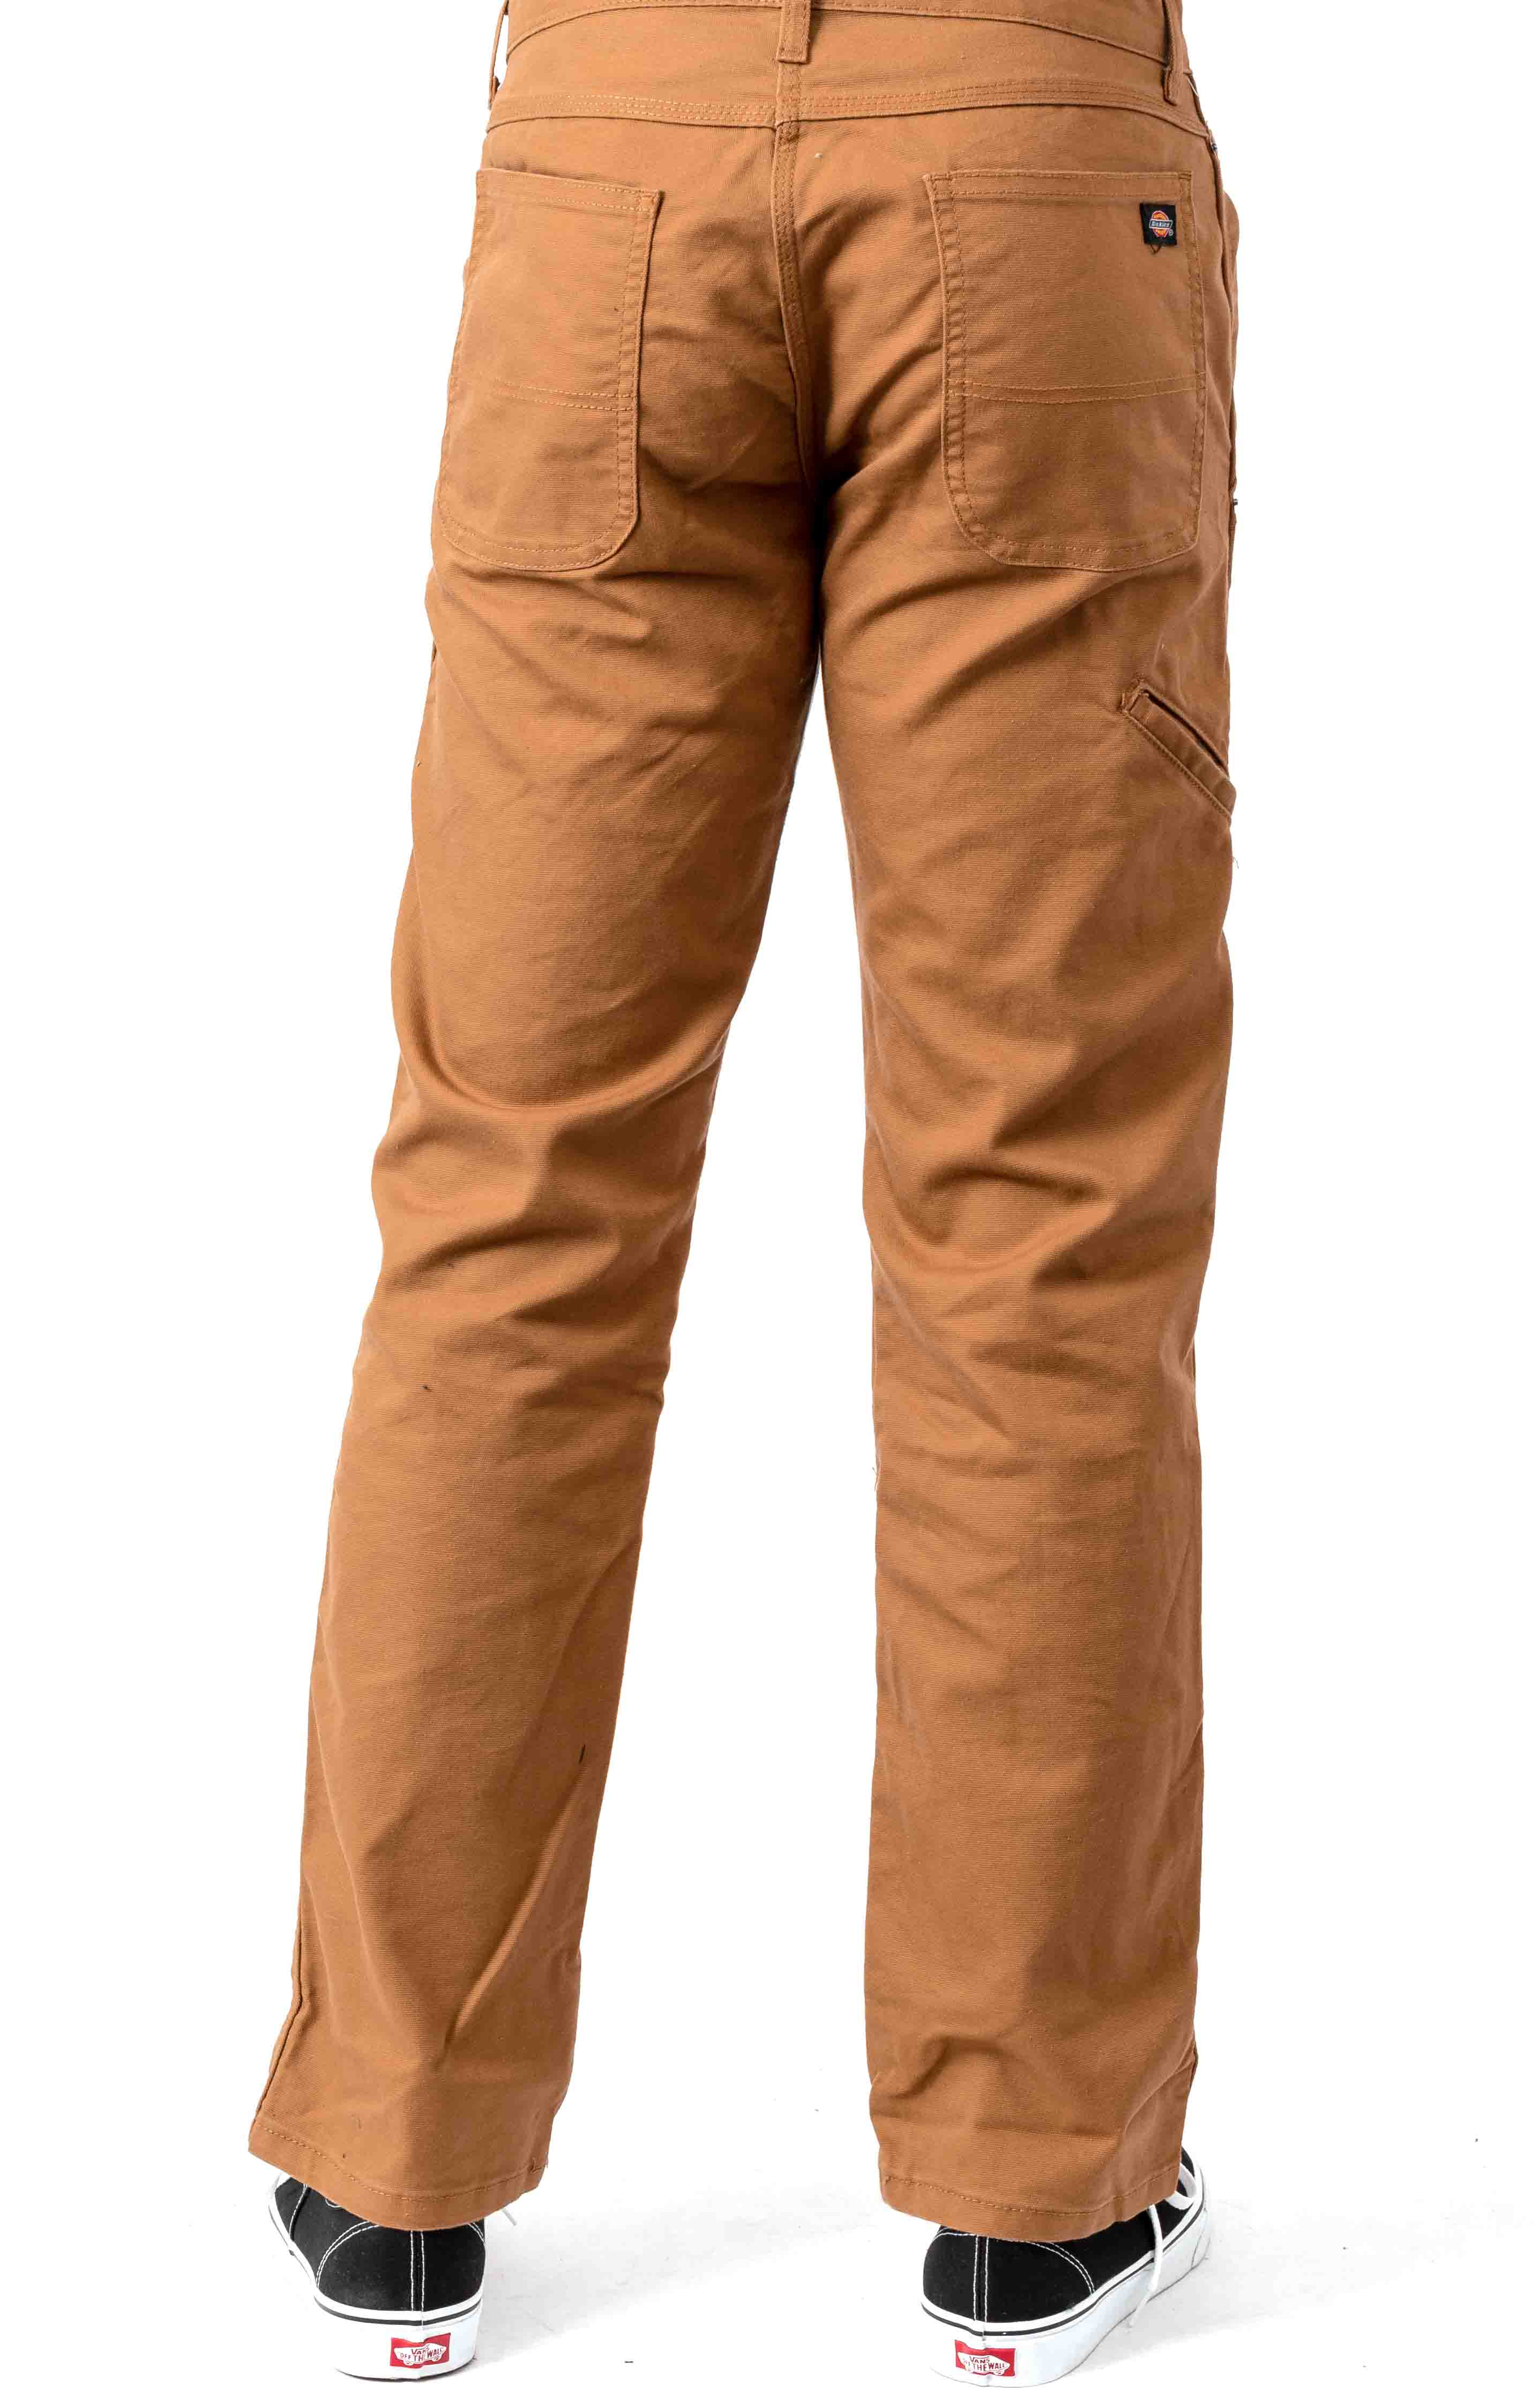 (DP903SBD) FLEX Regular Fit Tough Max Duck Double Knee Pant - Stonewashed Brown Duck 3